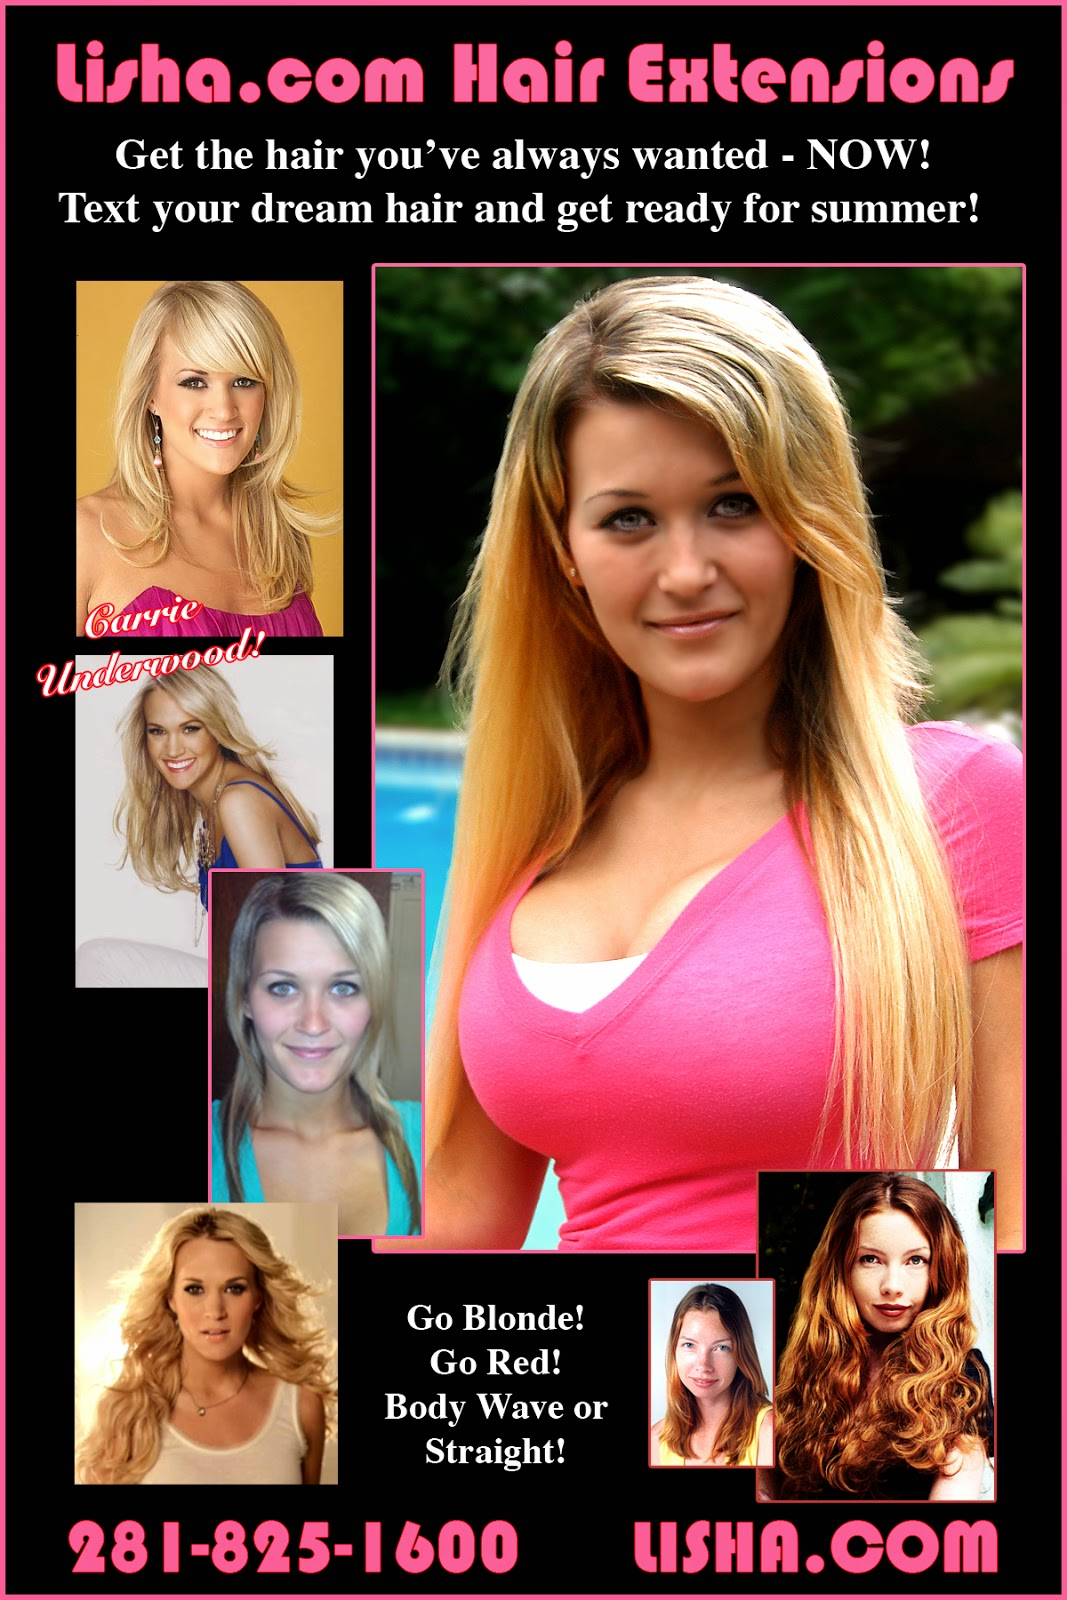 Carrie Underwood Summer Hair Extensions Hair Extensions Houston